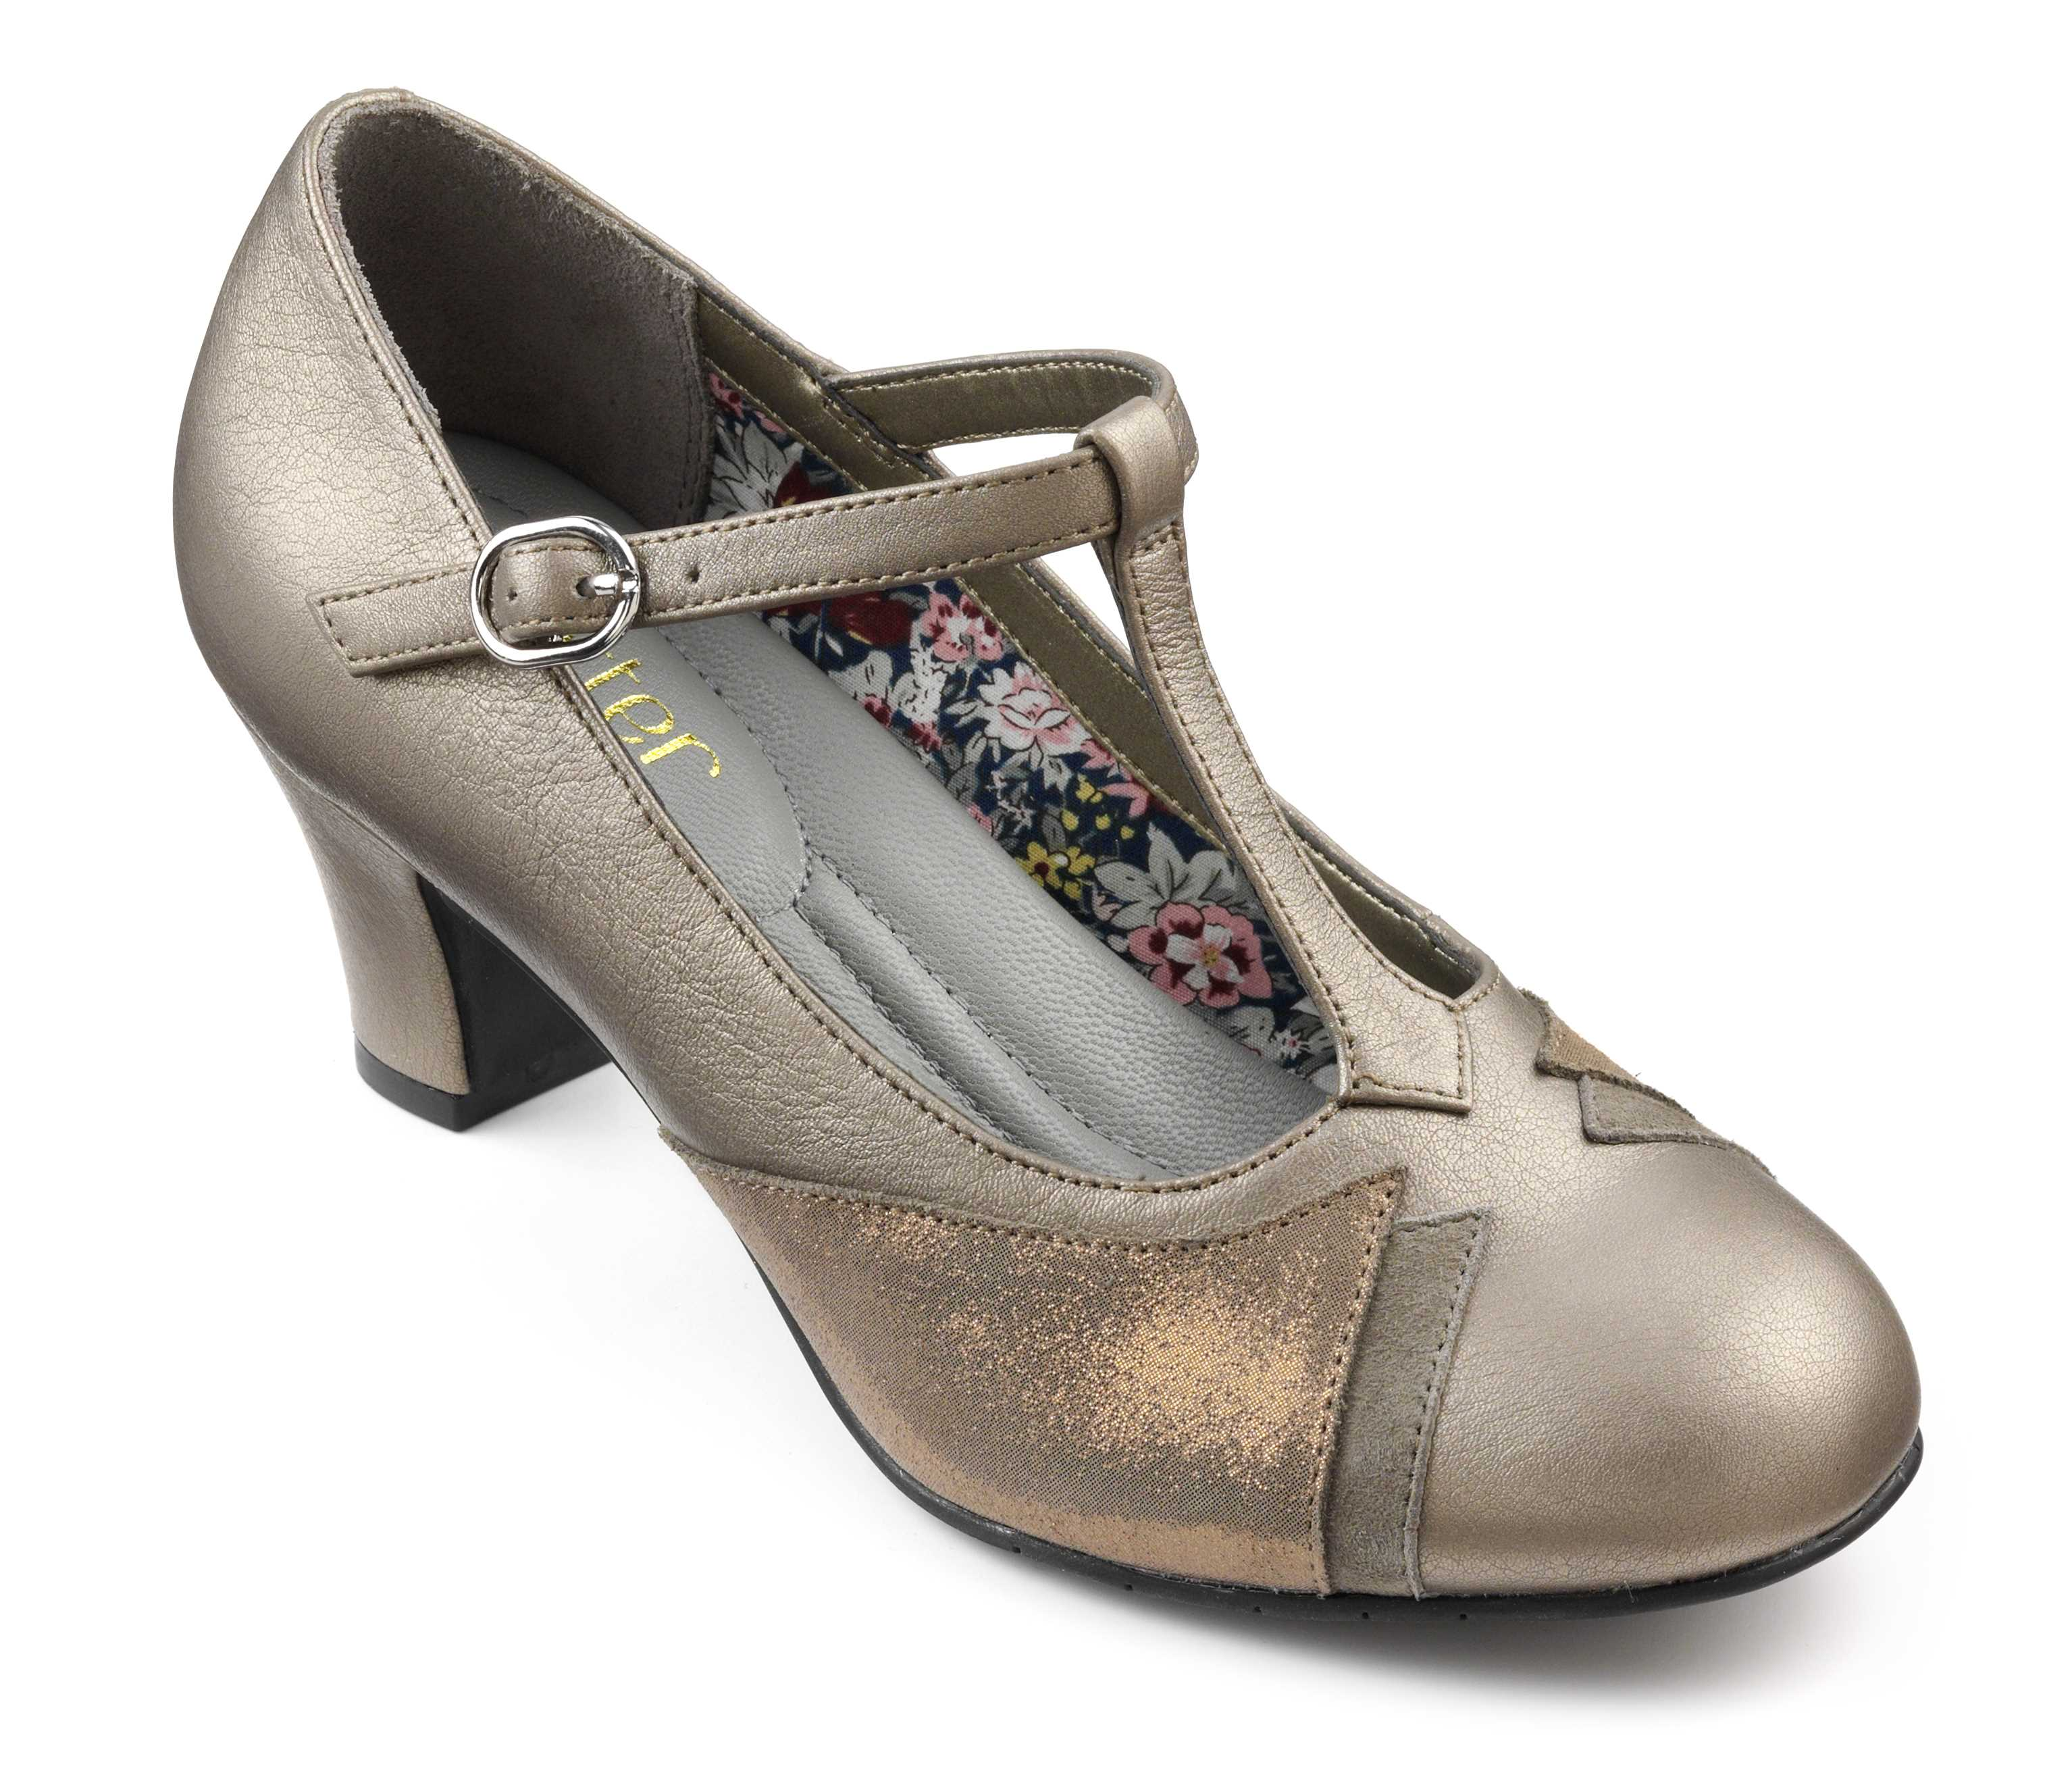 Women's t-bar heel Georgette in Pale Bronze